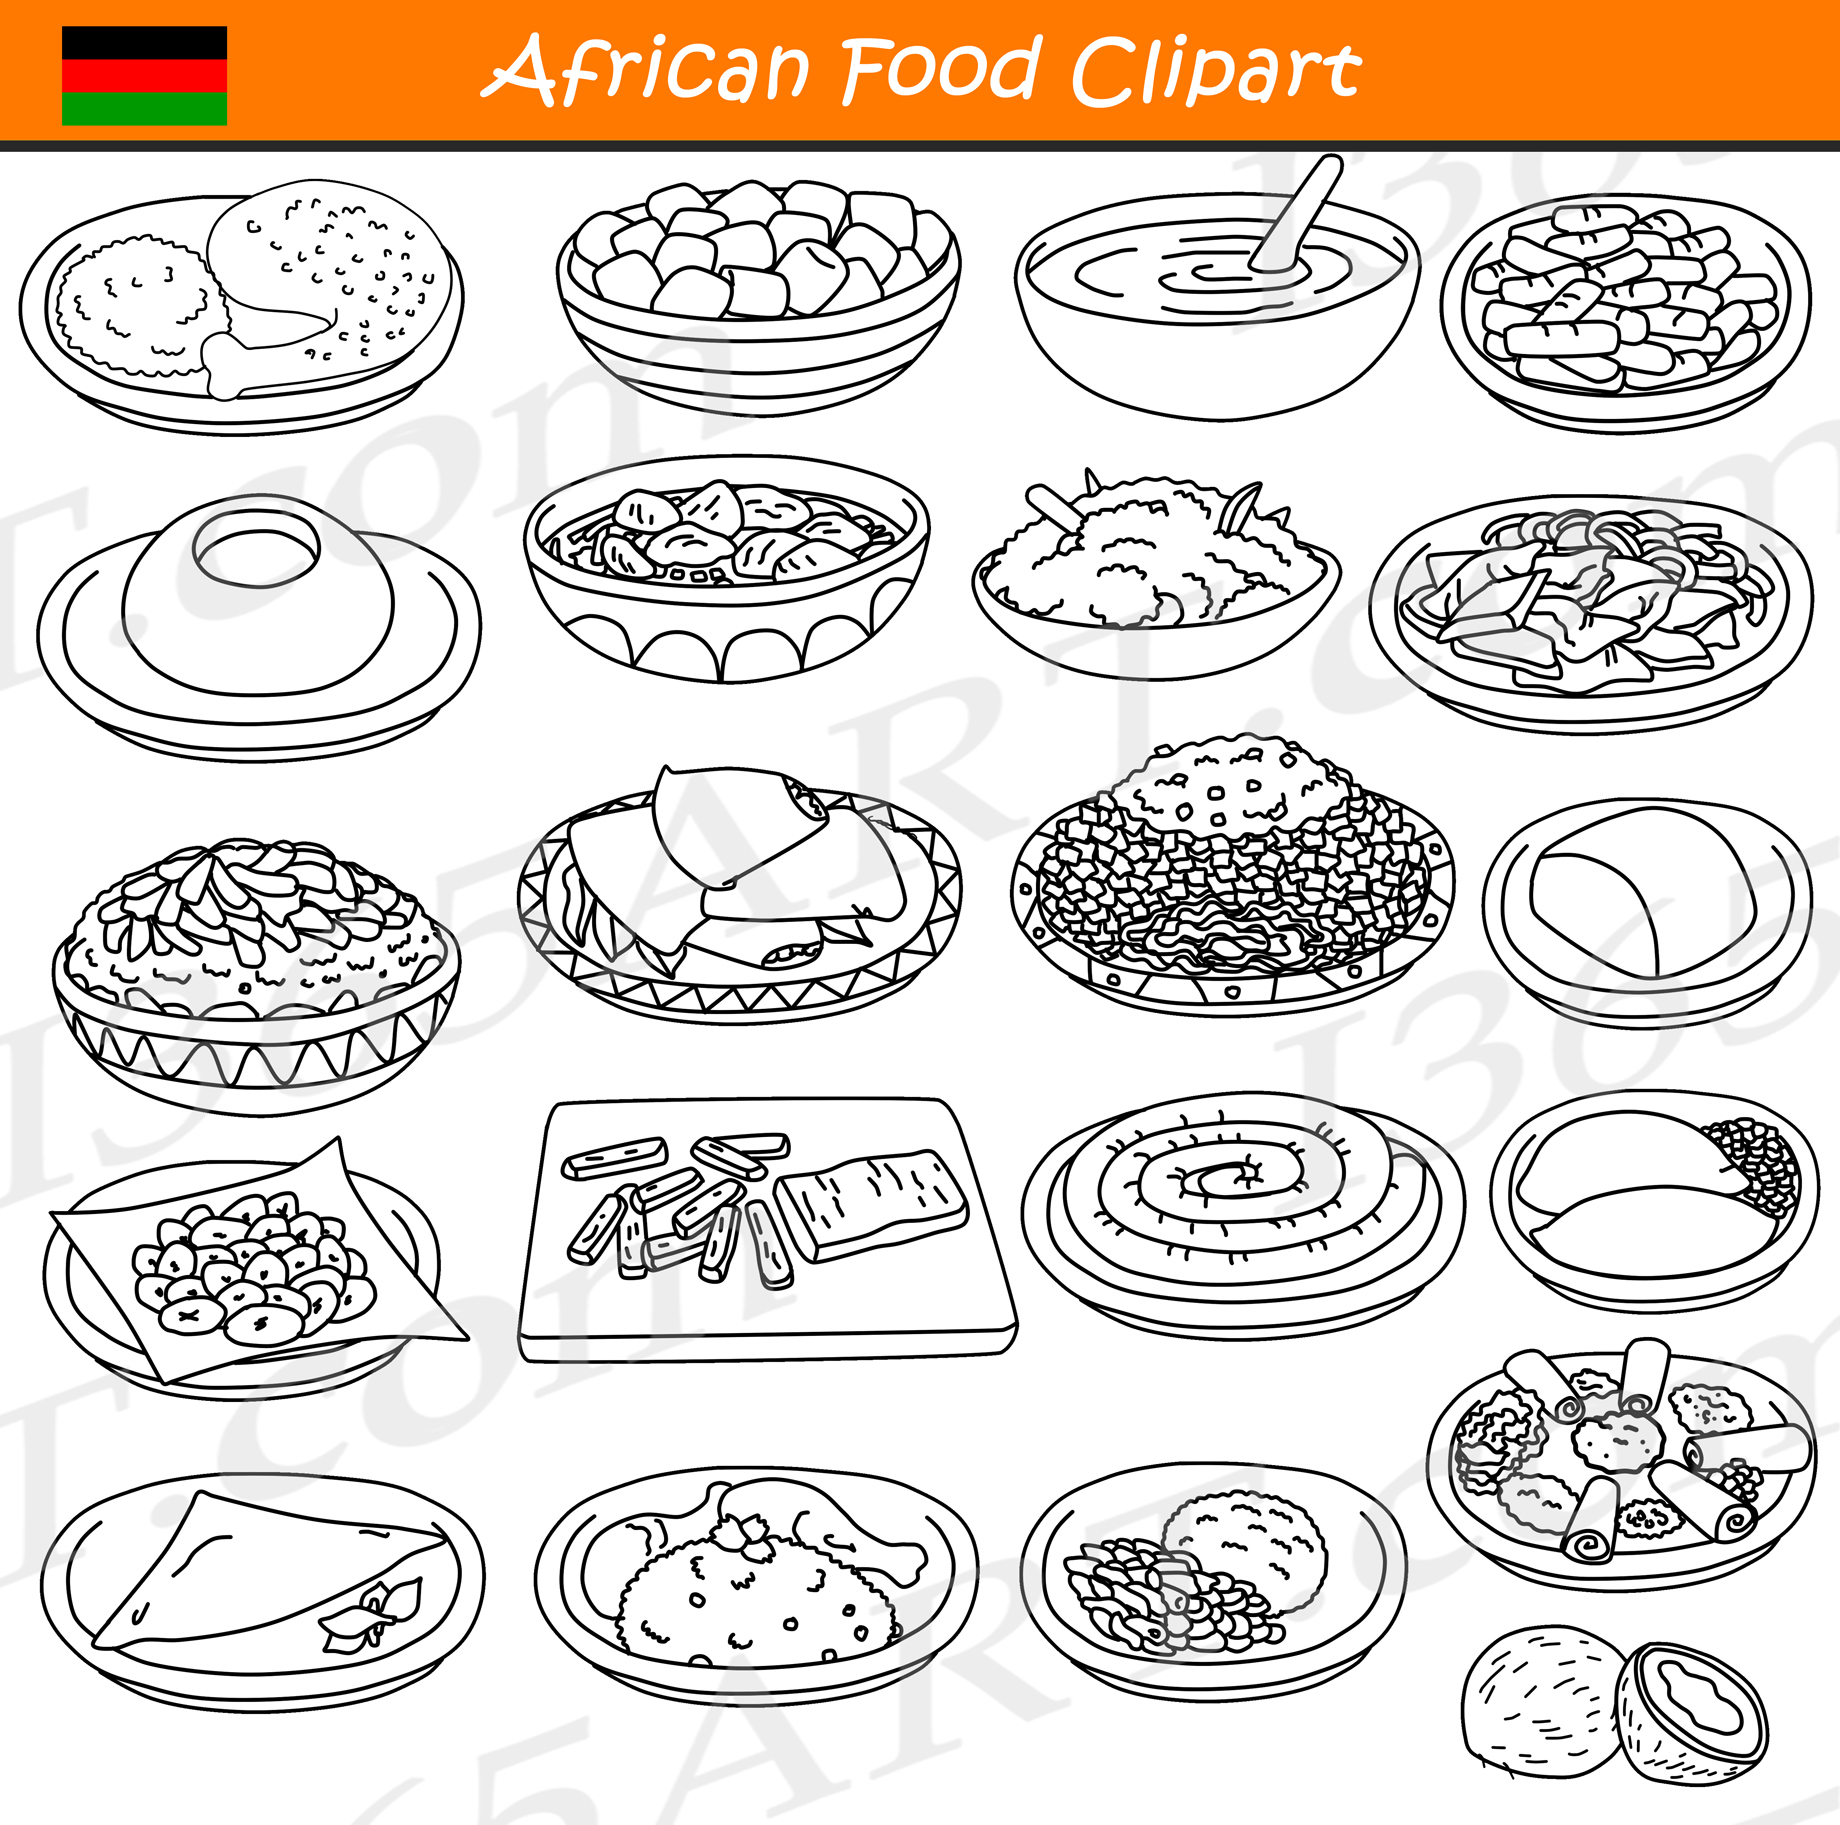 African Food Clipart Commercial - International Food ...